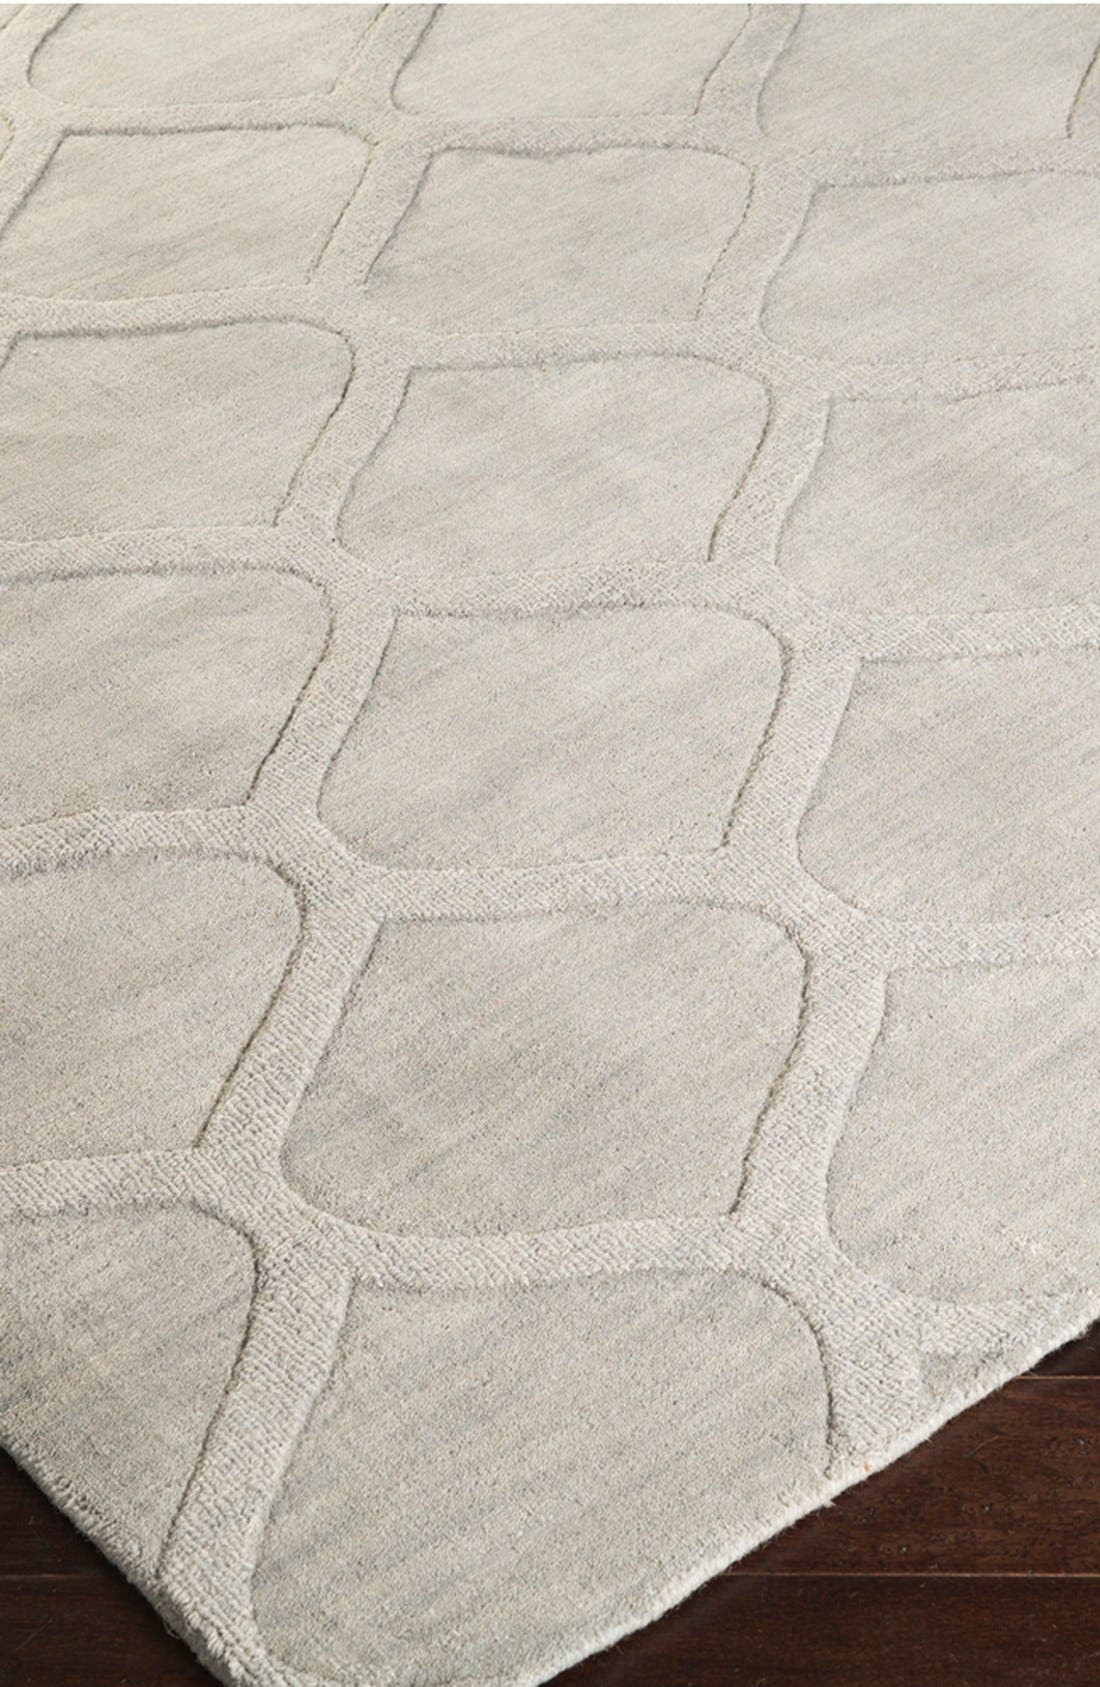 SURYA HOME,                             'Mystique' Hand Loomed Wool Rug,                             Alternate thumbnail 3, color,                             020